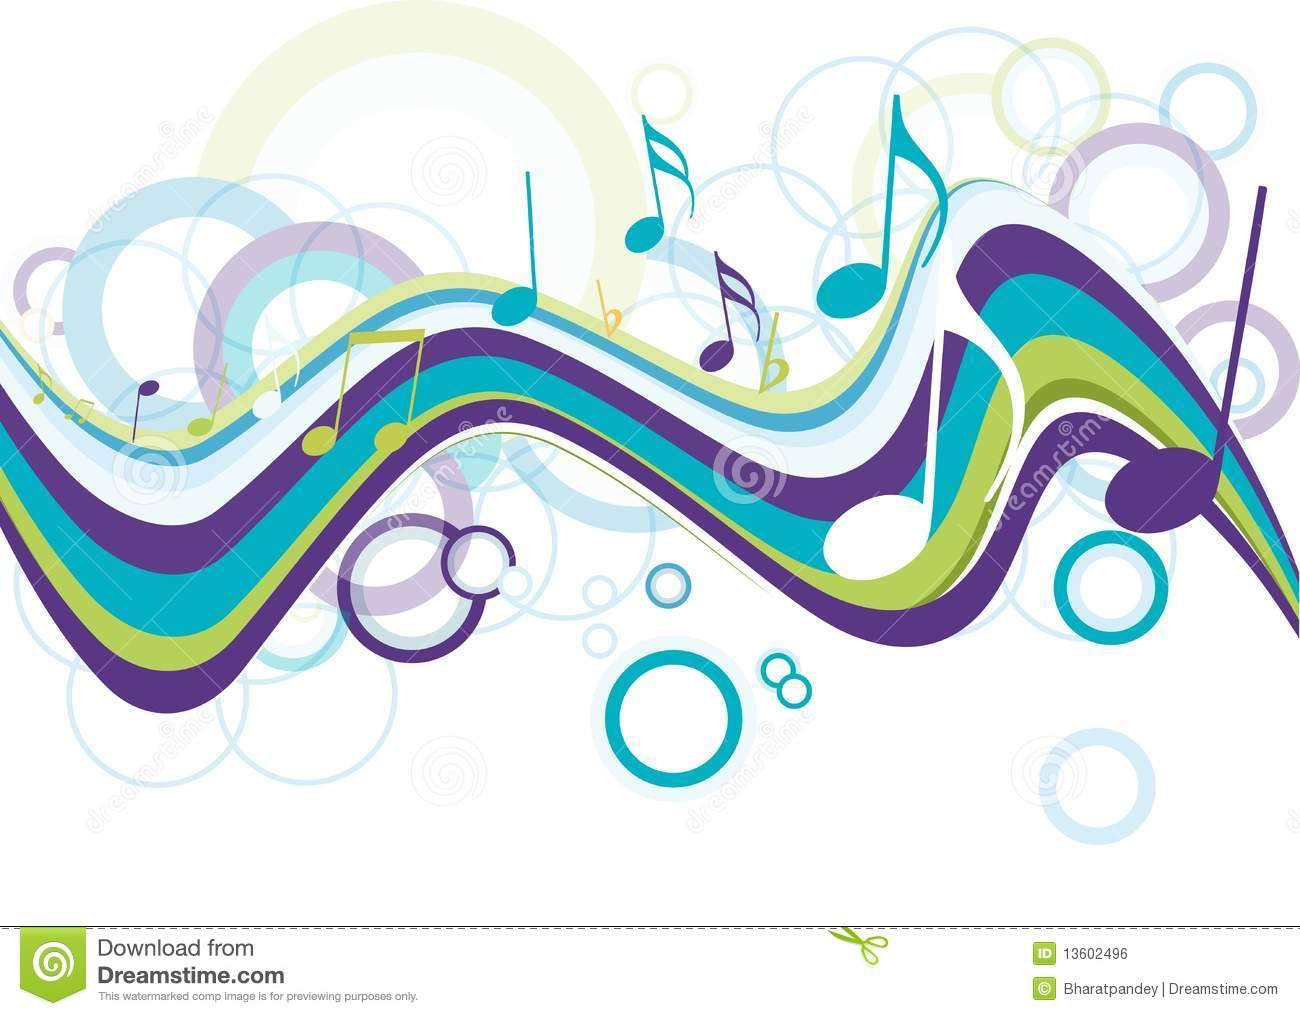 Abstract Music Notes Art: Abstract Colorful Music Note Royalty Free Stock Image